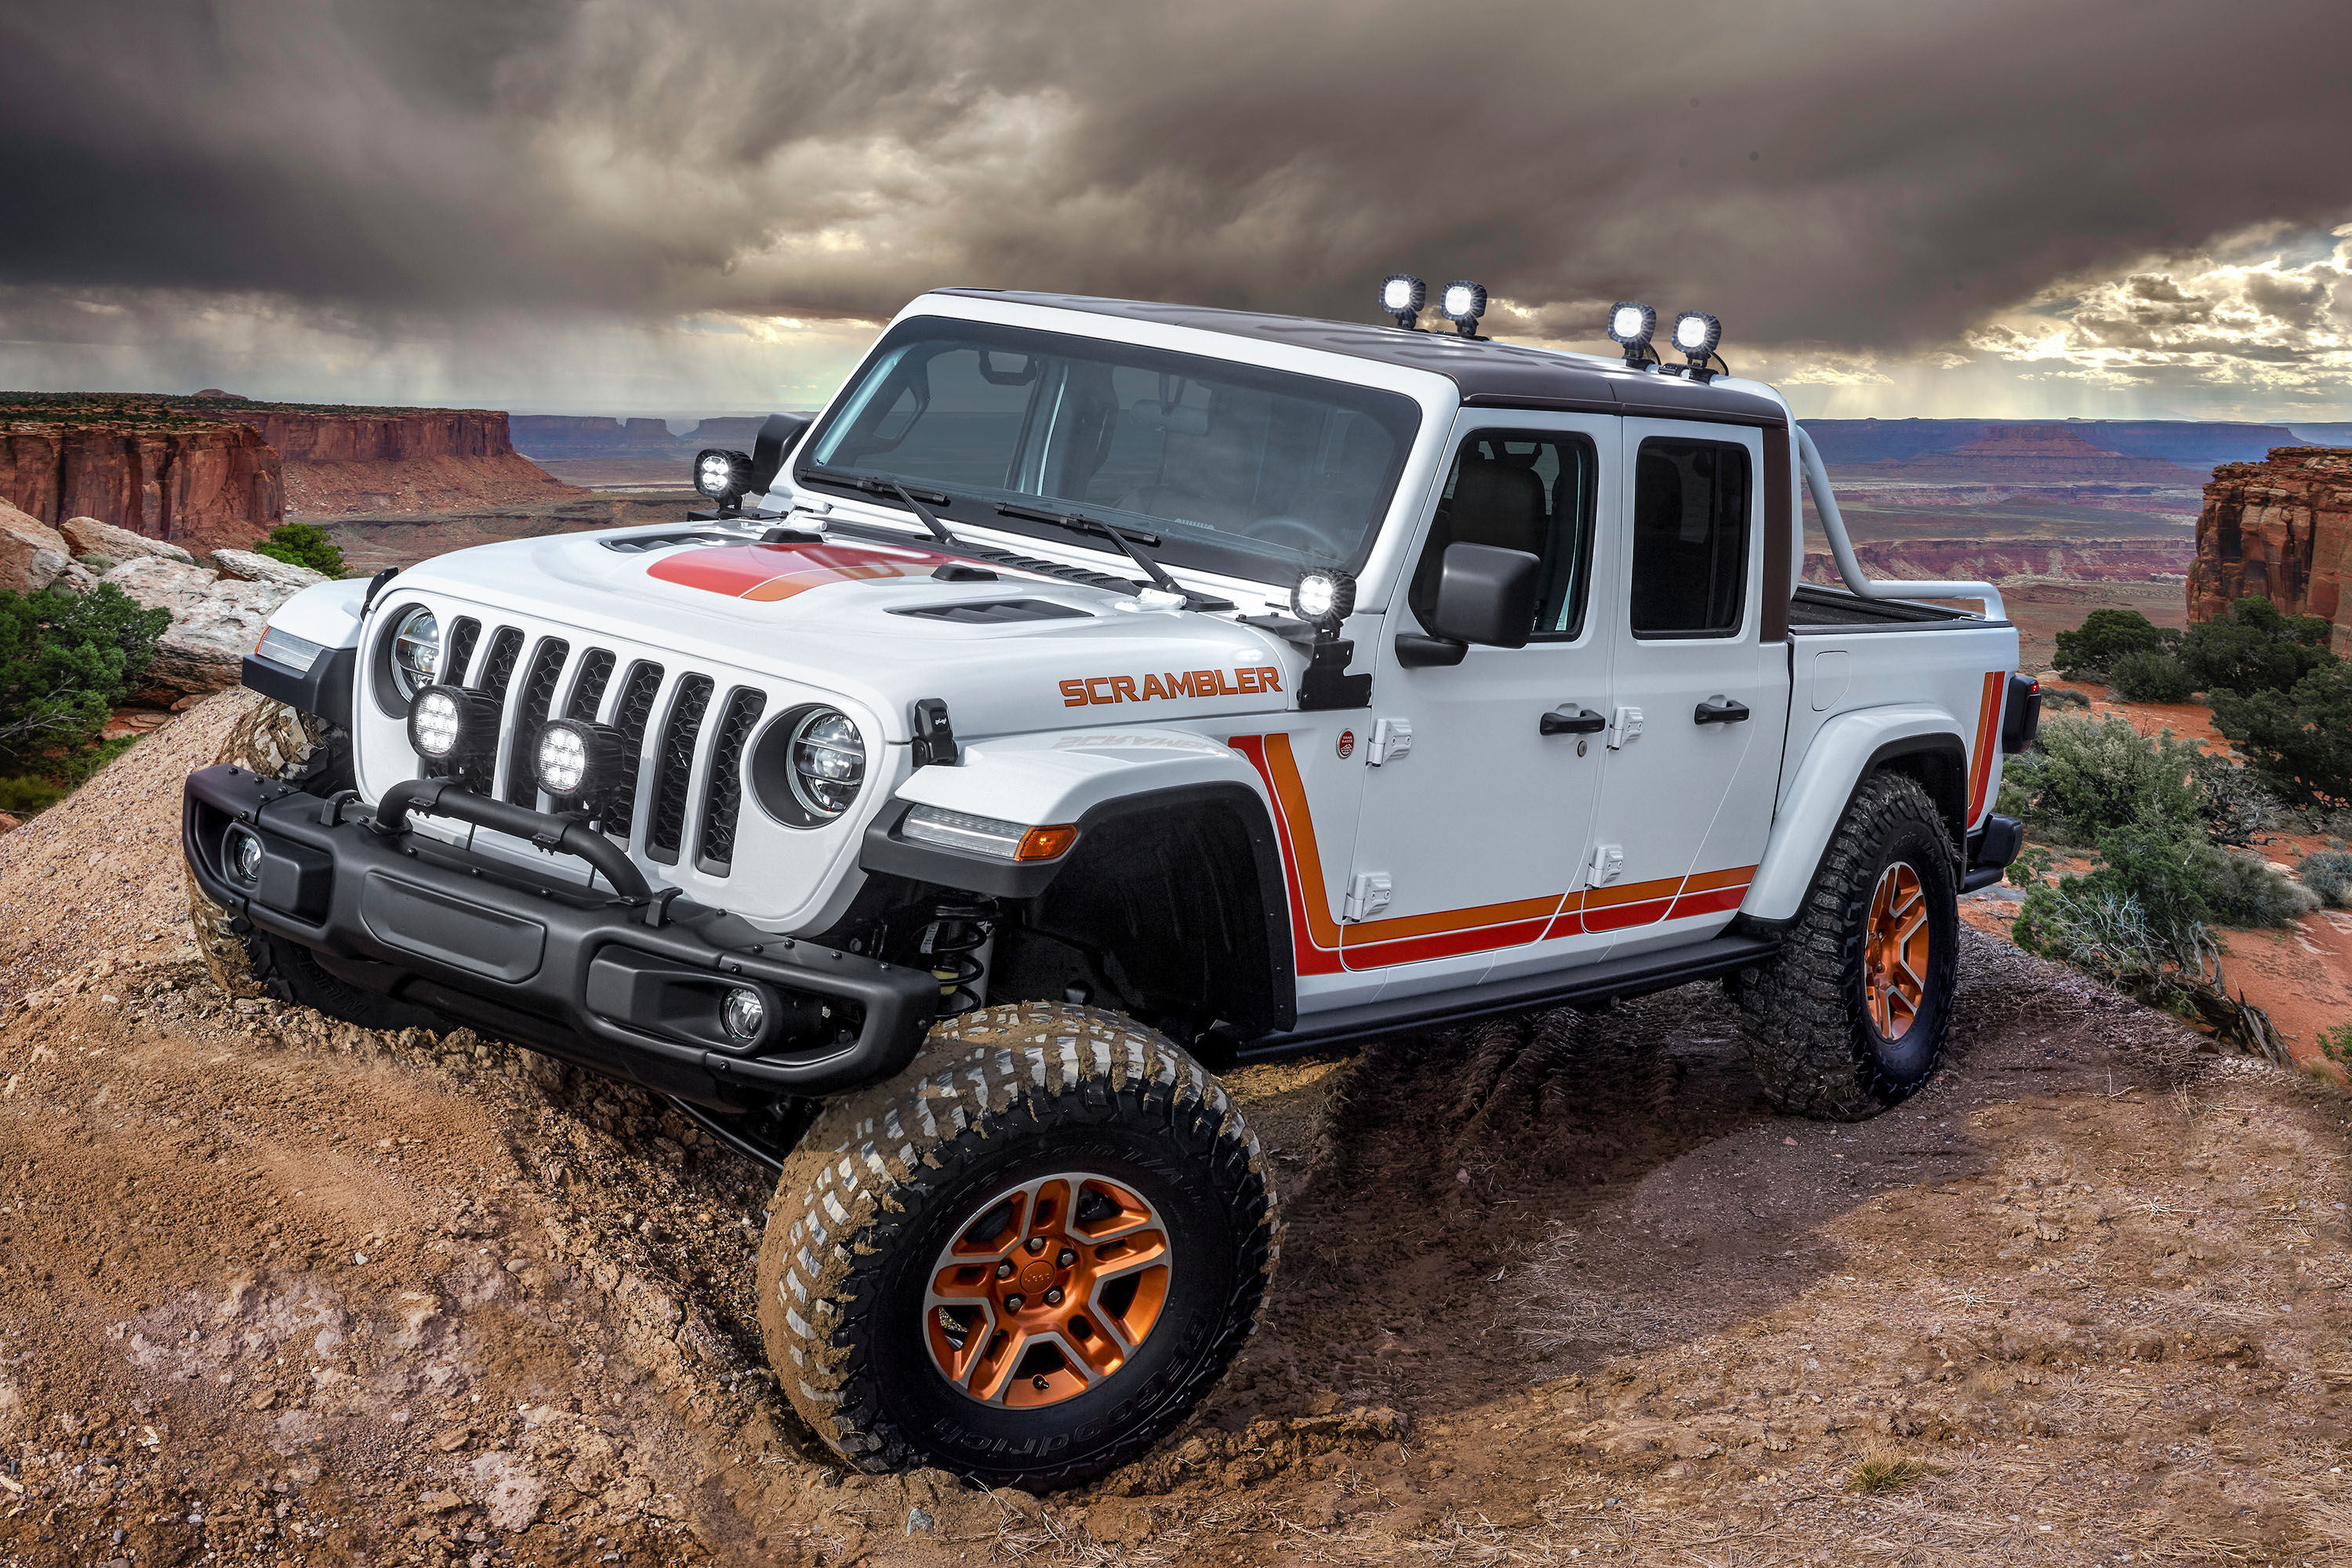 Jeep Just Released 6 Badass 'Easter Safari' Truck Concepts | GearJunkie